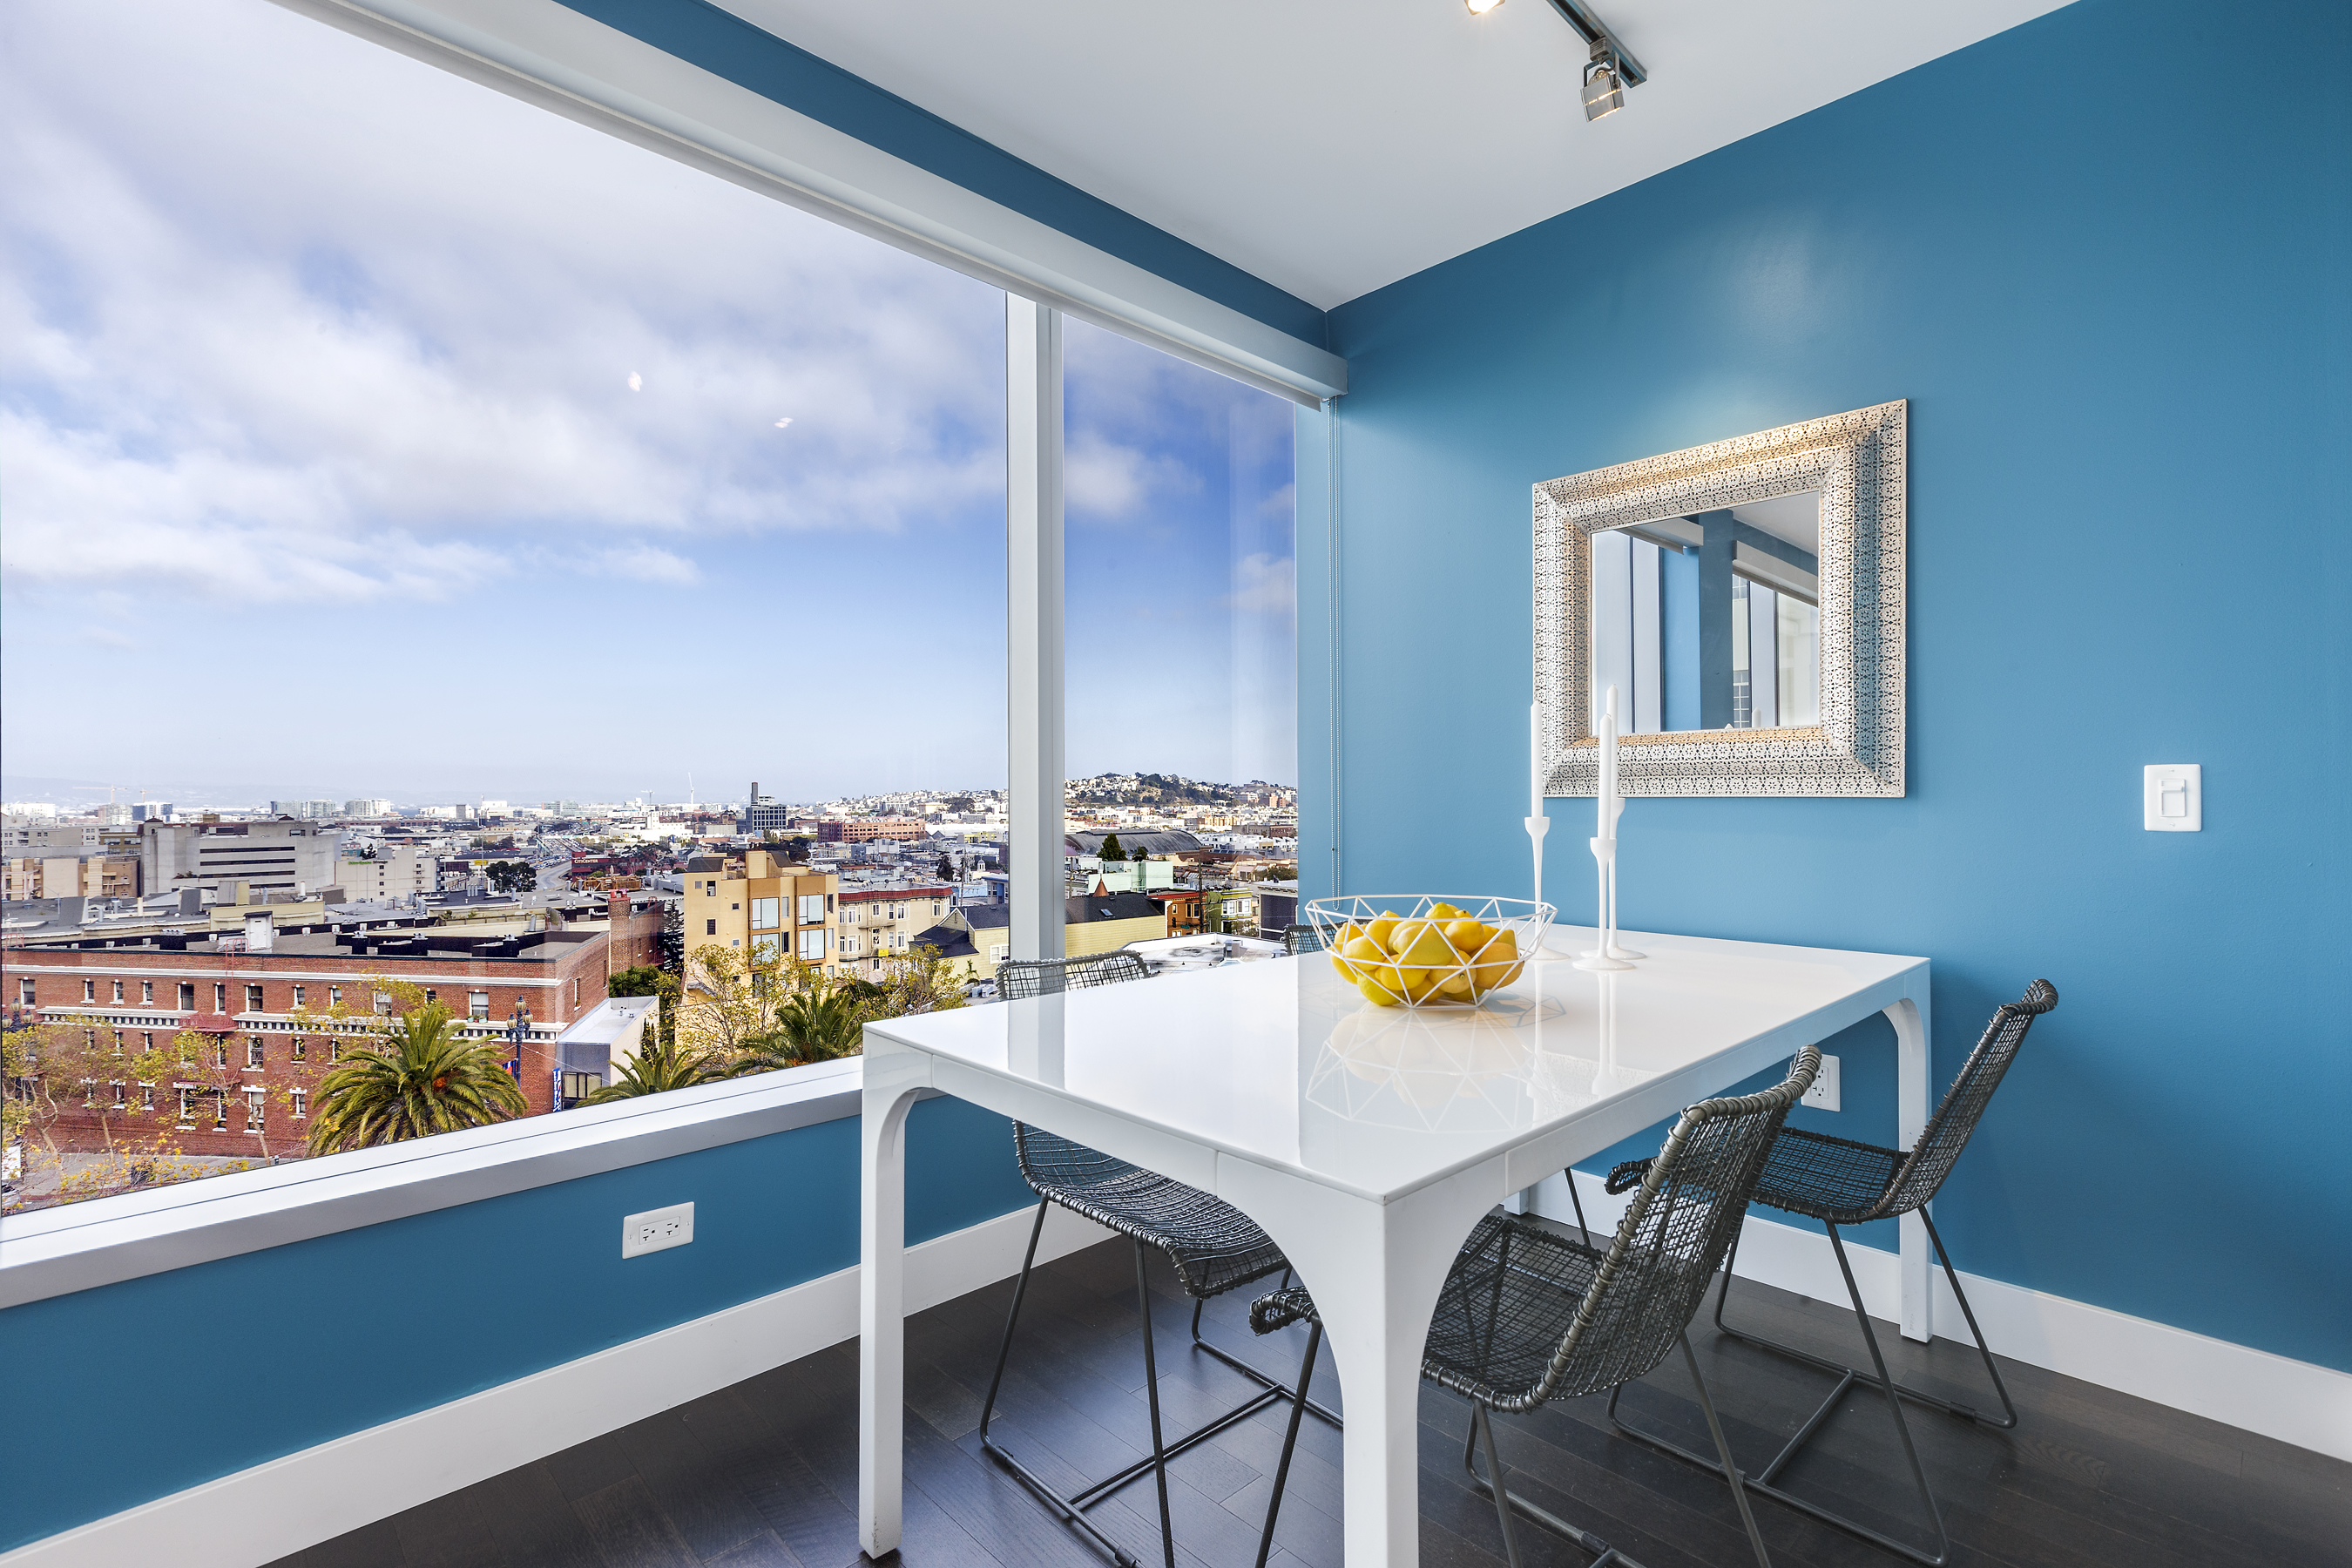 Sold | 8 Buchanan #612 | Hayes Valley | $1,295,000